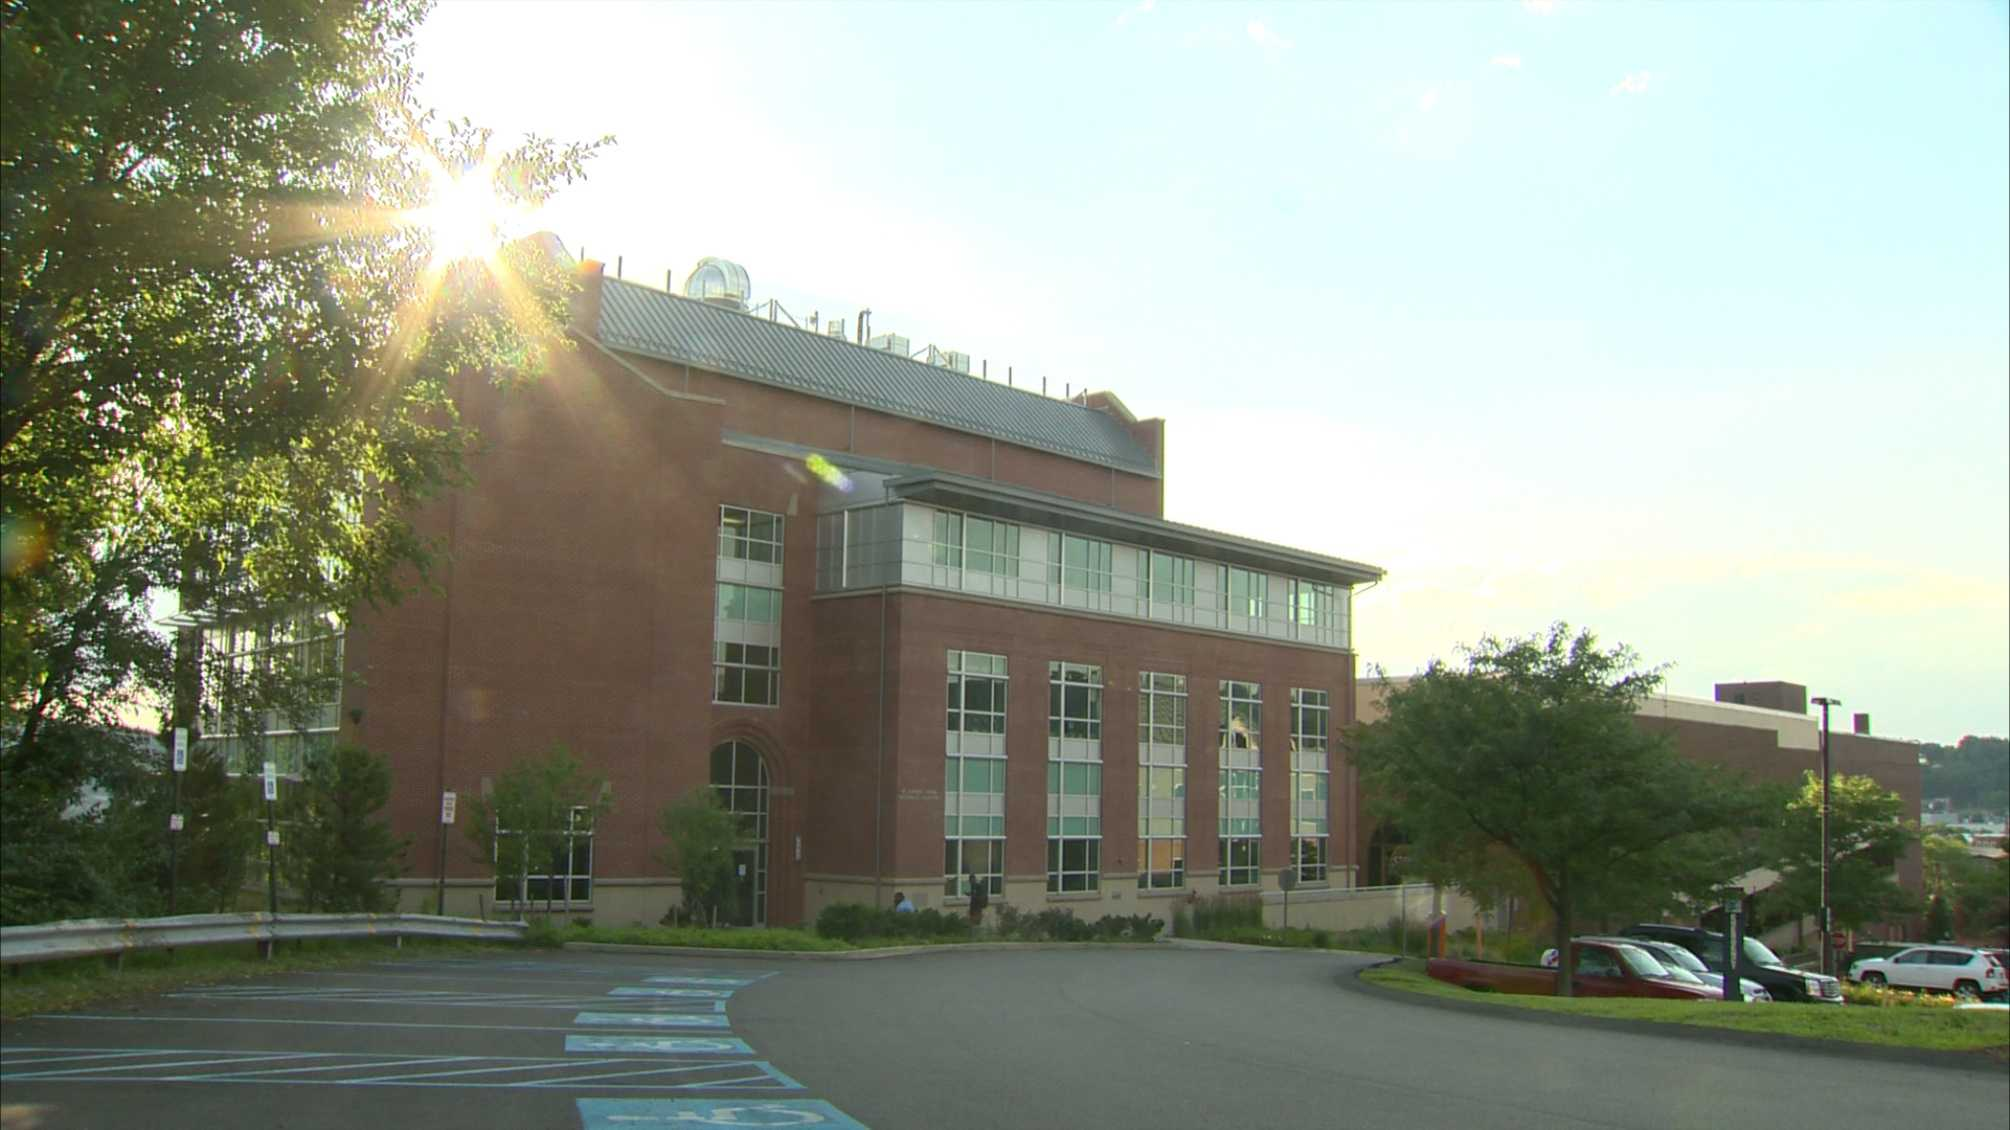 K. Leroy Irvis Science Center